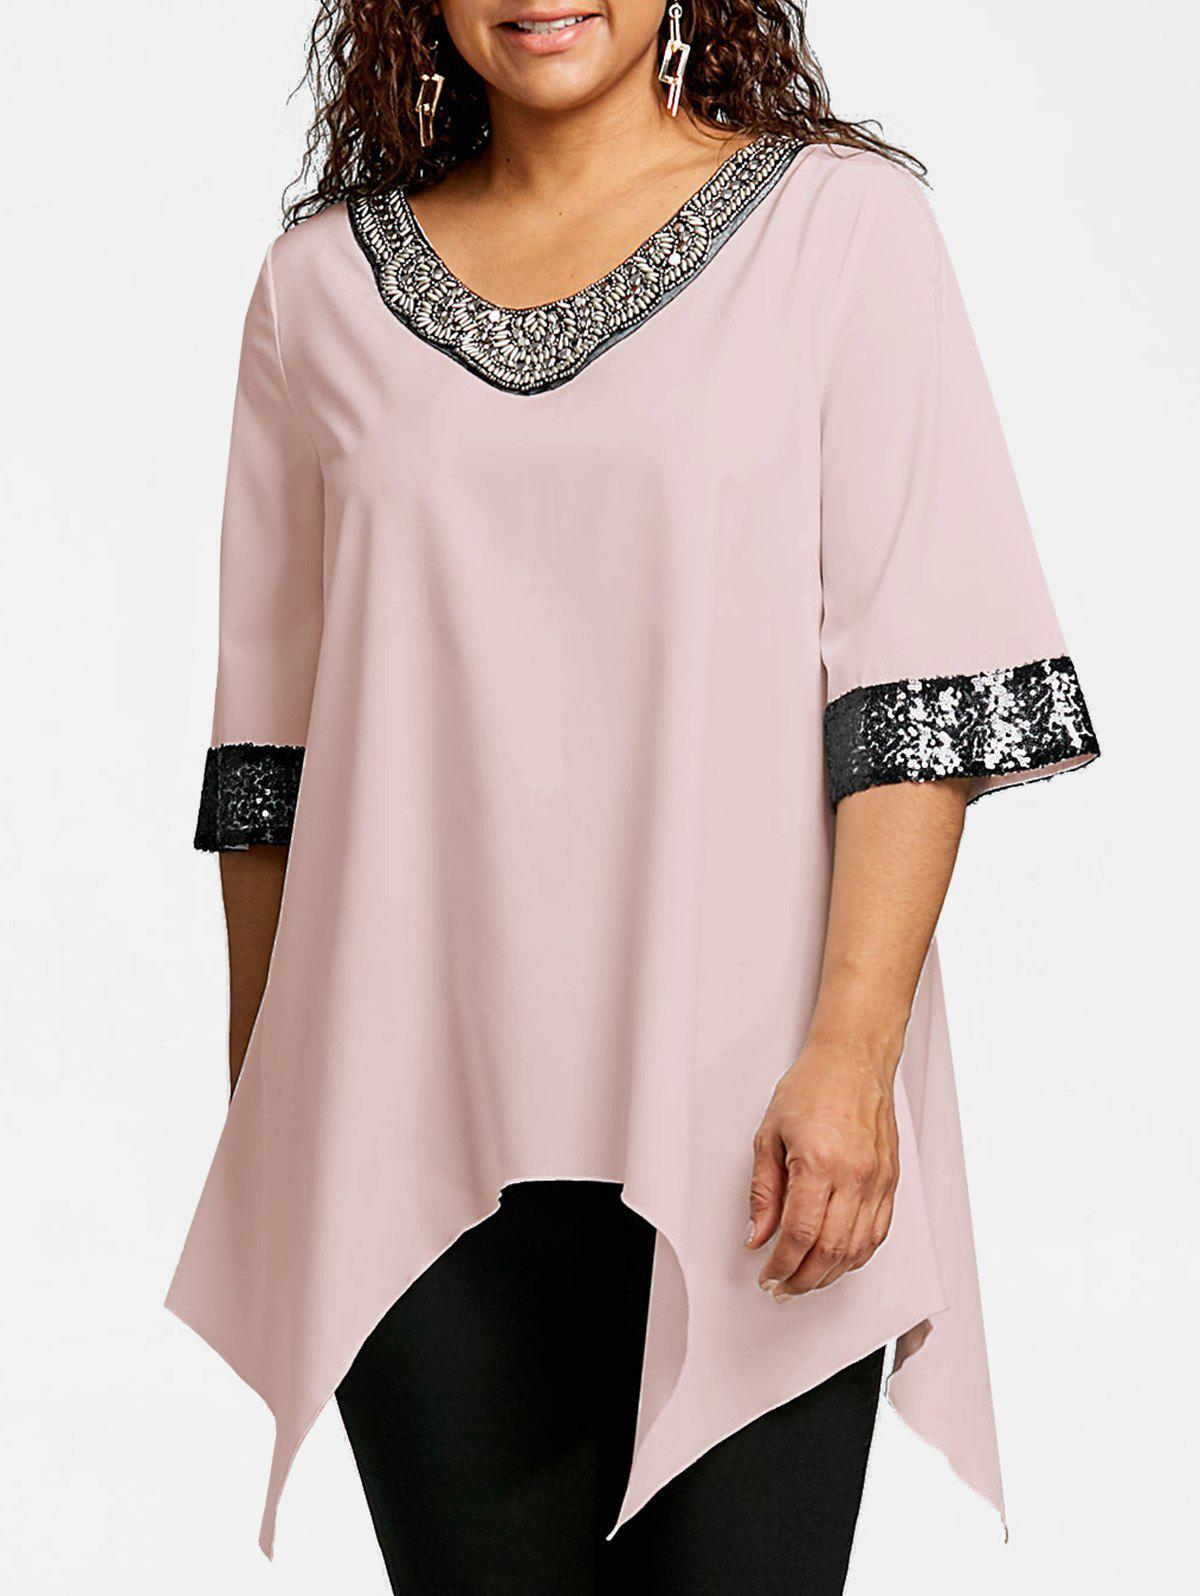 Plus Size Two Tone Sequined Embellished Blouse - LIGHT PINK 4XL